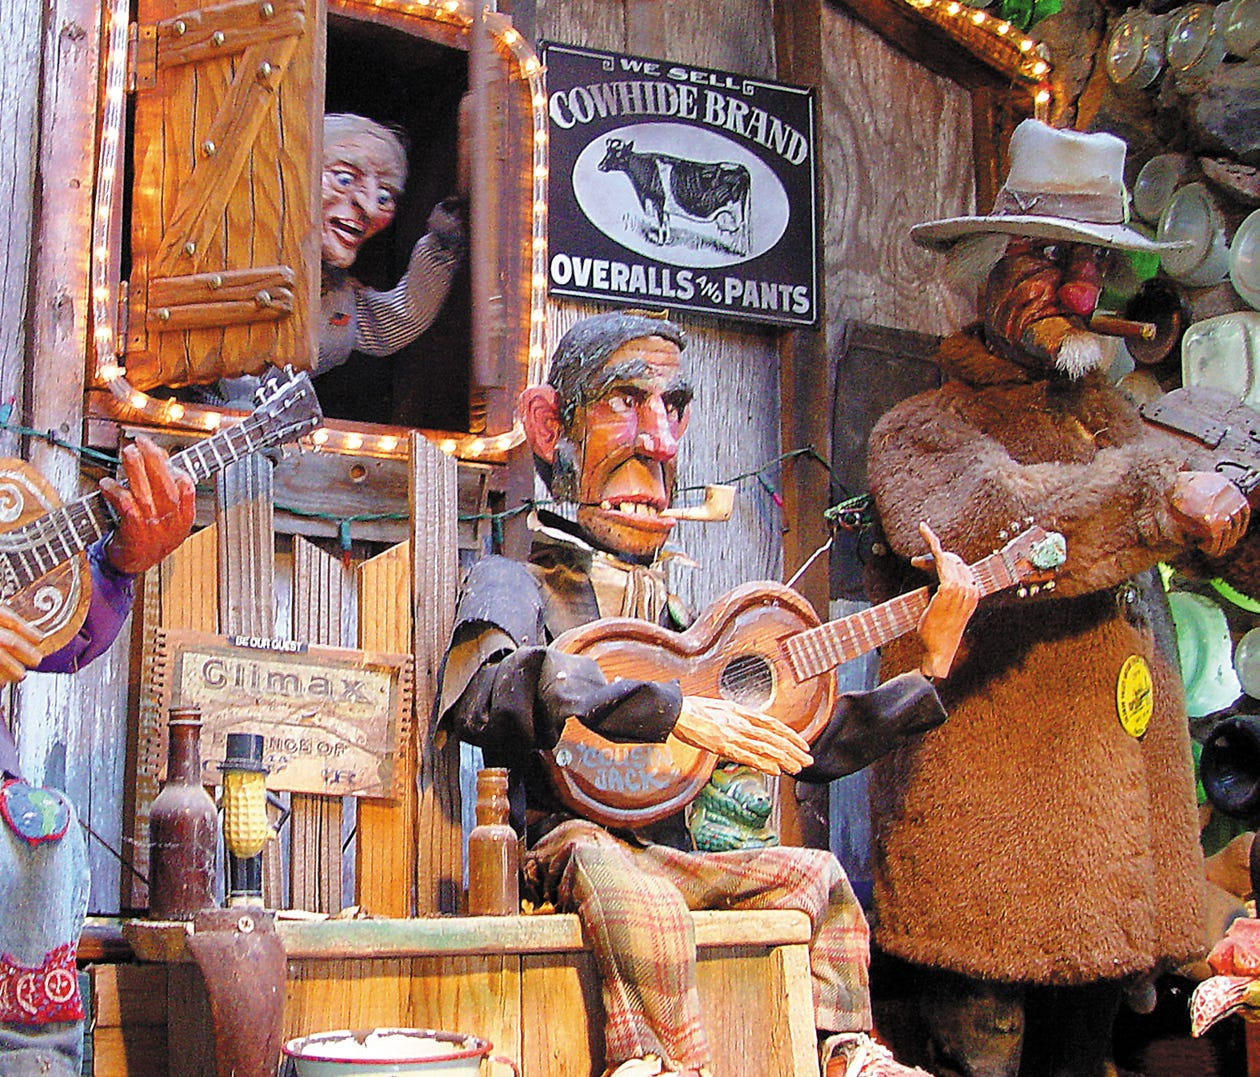 New Mexico: Tinkertown Museum, Sandia Park: The Tinkertown Museum is a labor of love from creator Ross Ward, who spent 40 years carving, collecting and creating the elements from which the museum is constructed and the items on display there, accordi